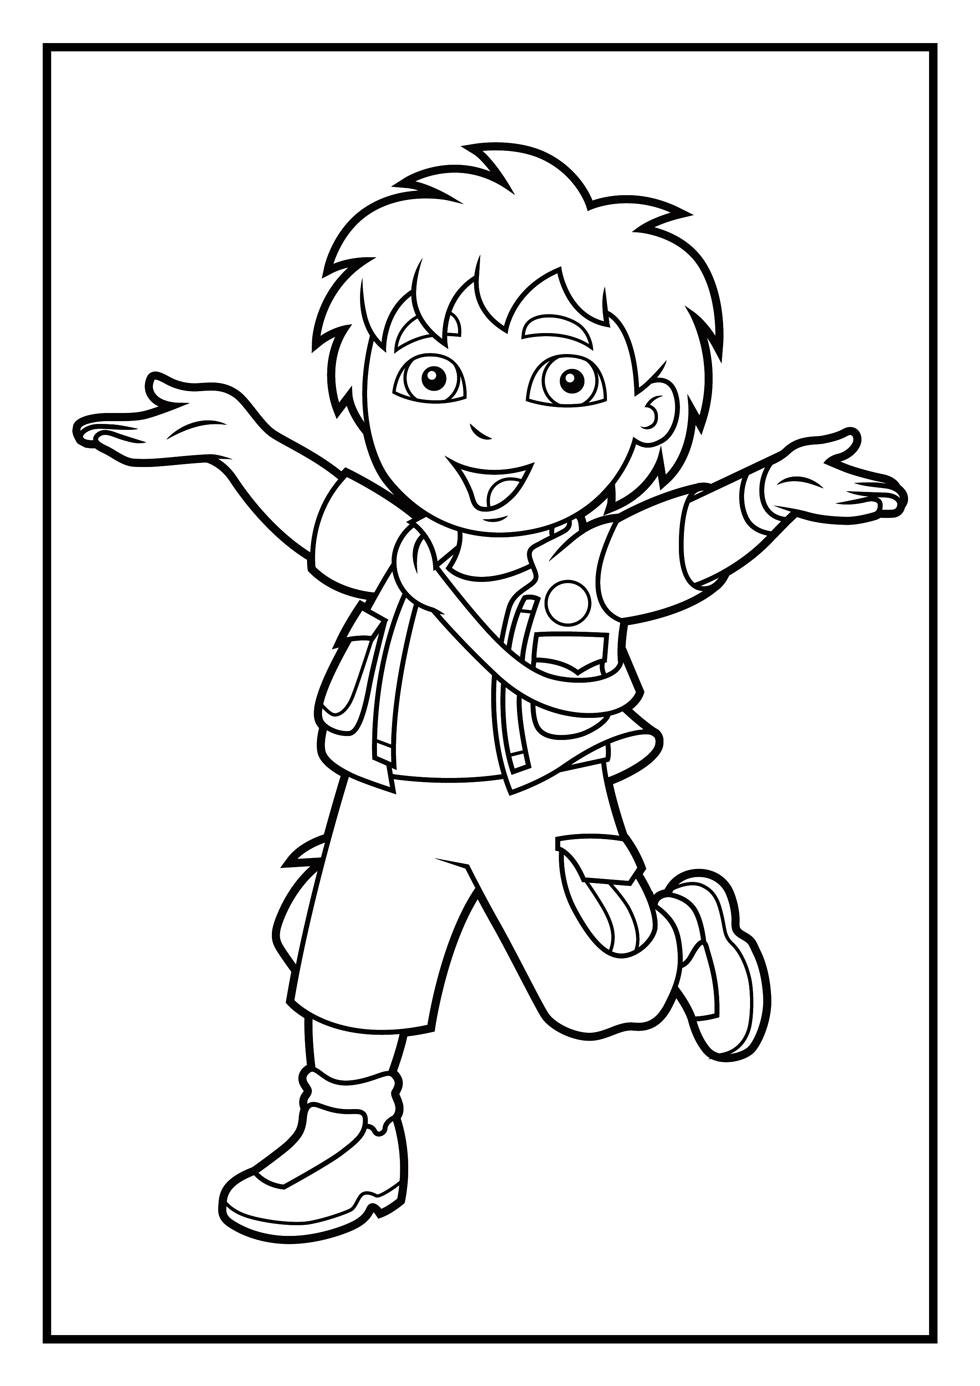 deigo coloring pages - photo#2